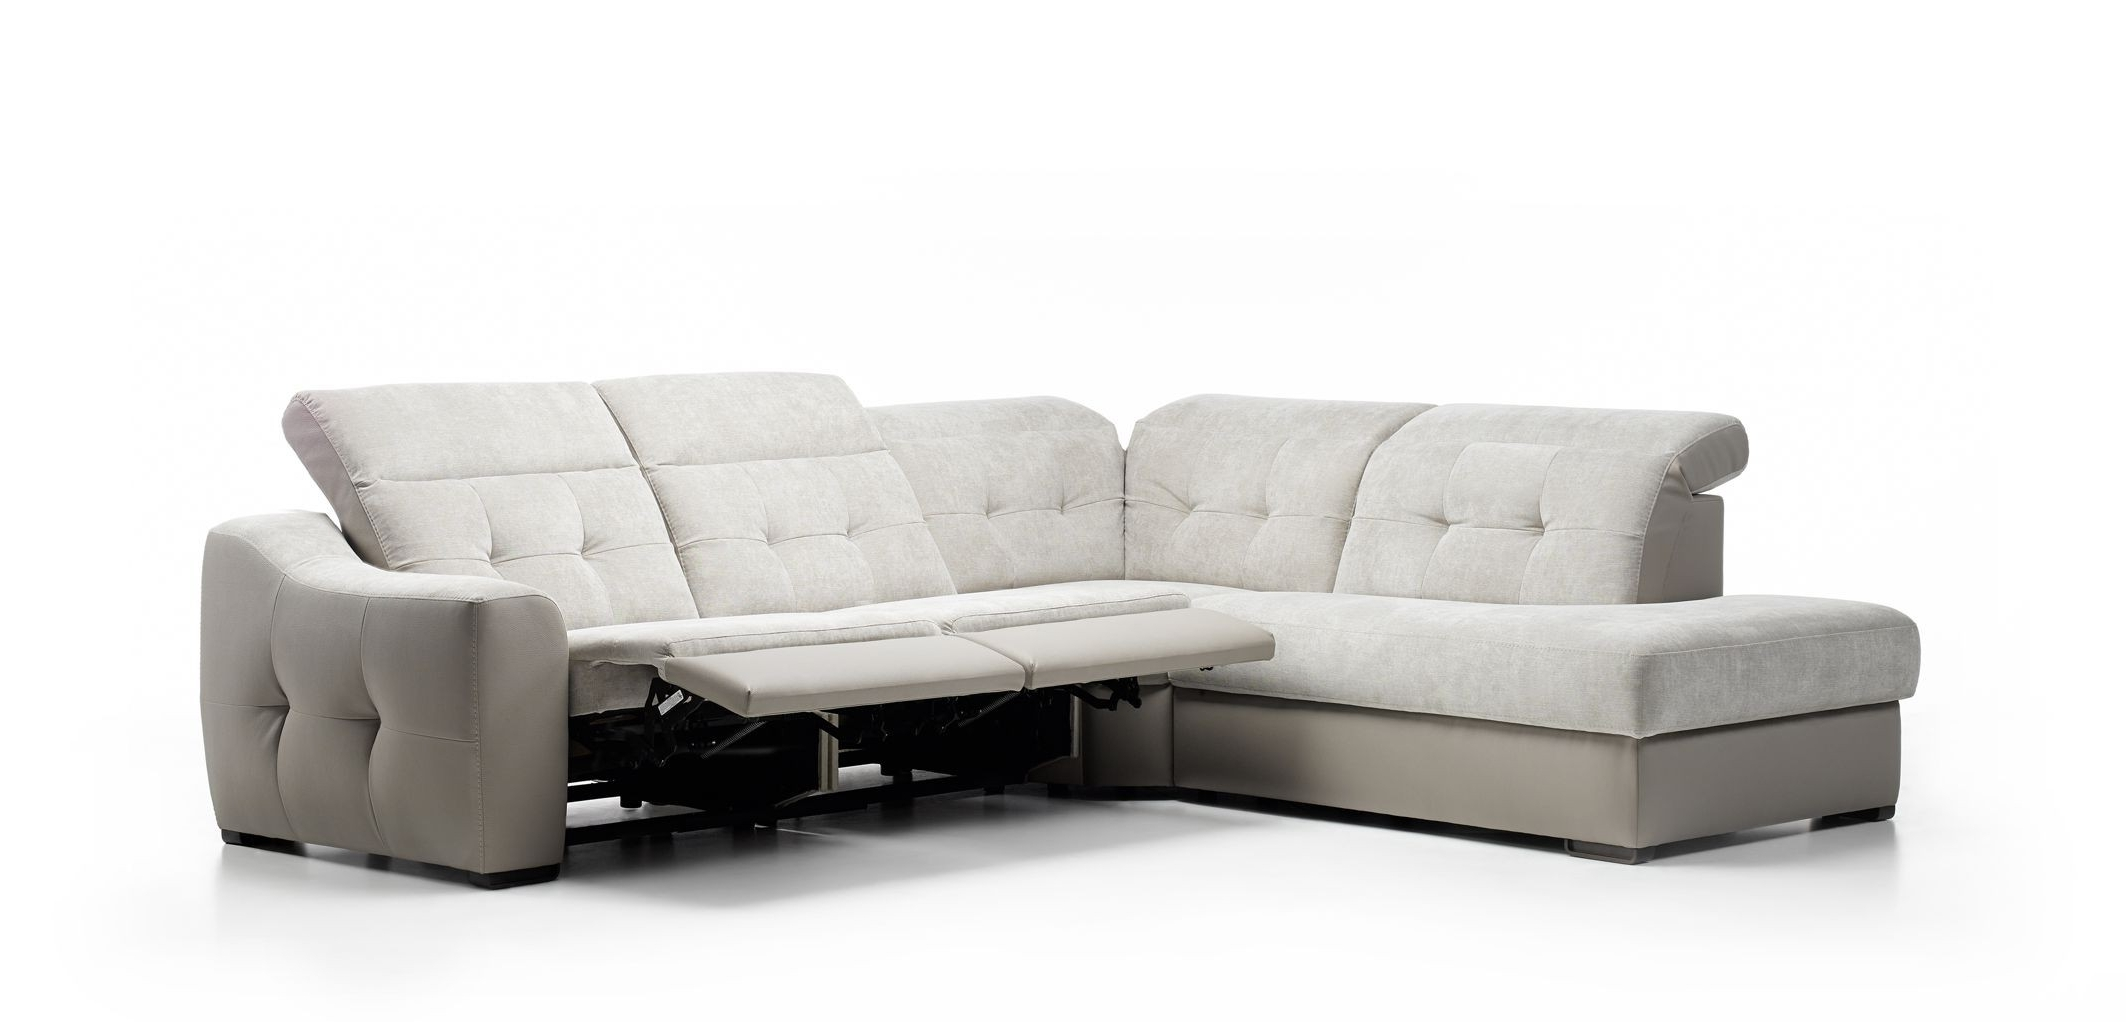 Popular Wall Hugger Loveseat Recliners Loveseat Sectional Apartment Size For Modern Sectional Sofas For Small Spaces (View 10 of 20)